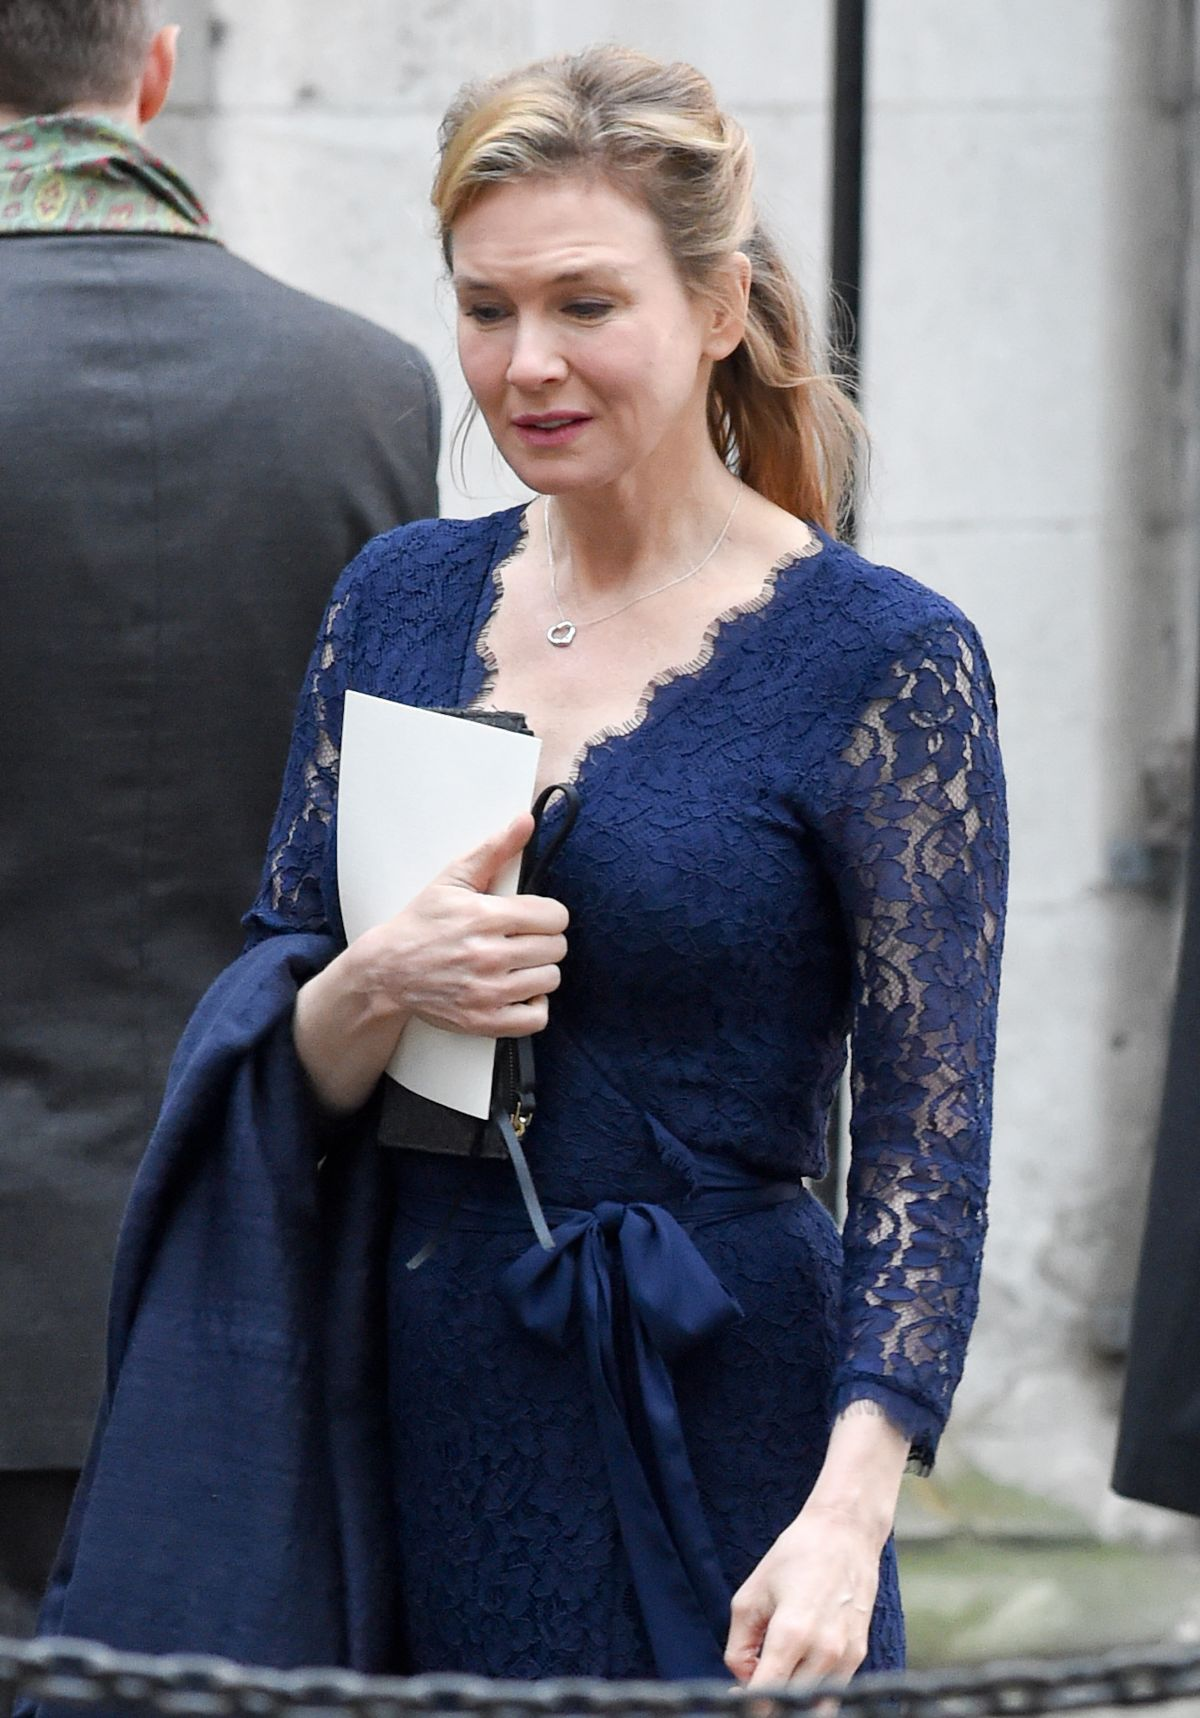 RENEE ZELLWEGER on the Set of Bridget Jones' Baby 11/10/2015 ... Renee Zellweger